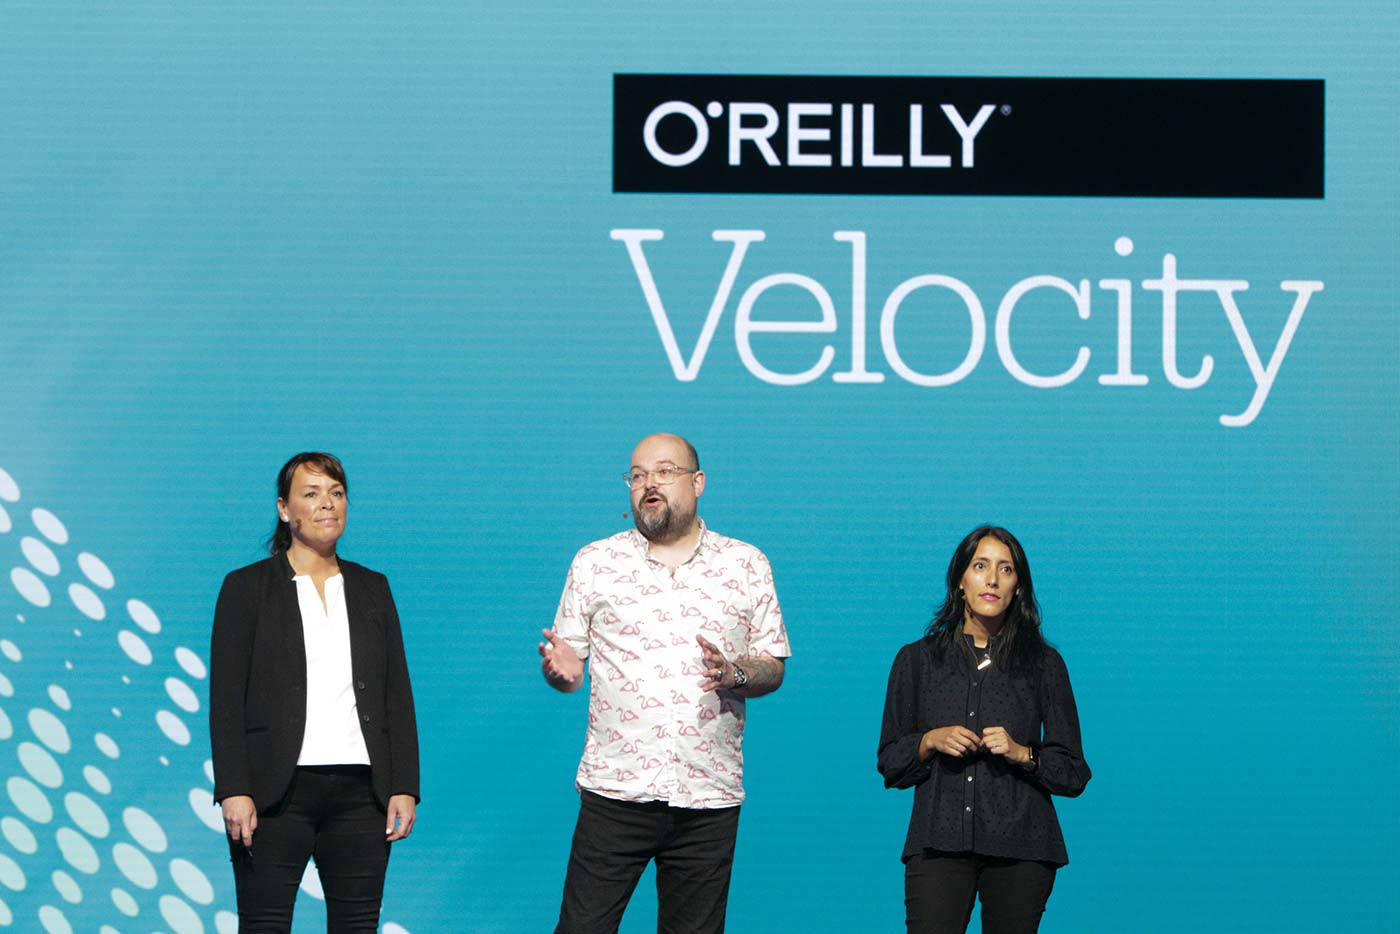 L to R: Velocity chairs Mary Treseler, James Turnbull, and Ines Sombra at the O'Reilly Velocity Conference in San Jose 2017.